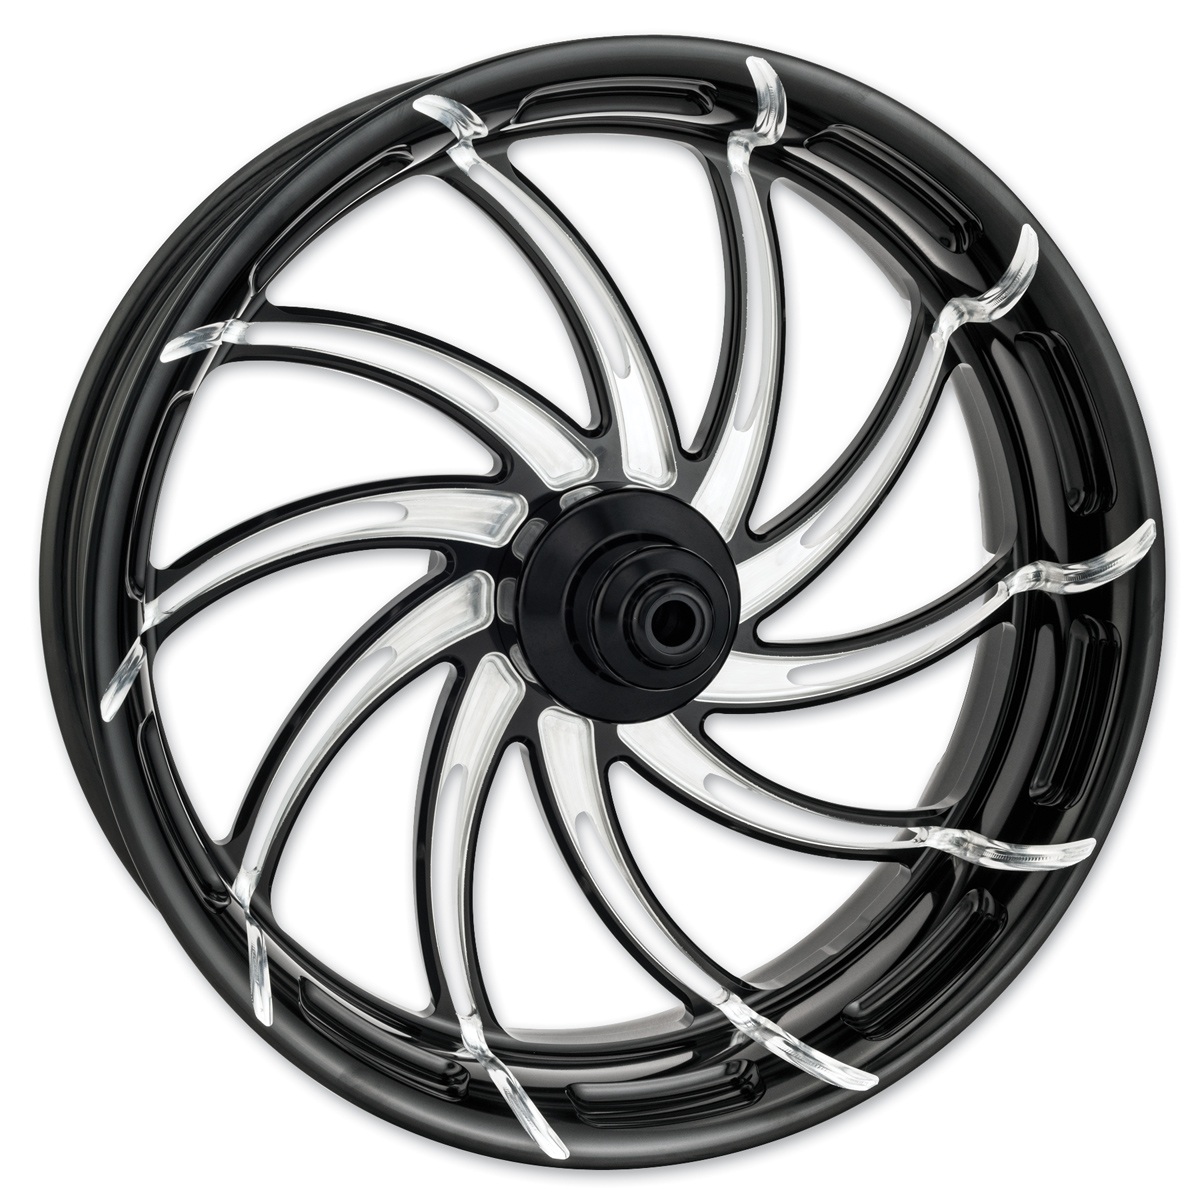 Performance Machine Supra Platinum Cut Front Wheel 21x3.5 Non-ABS